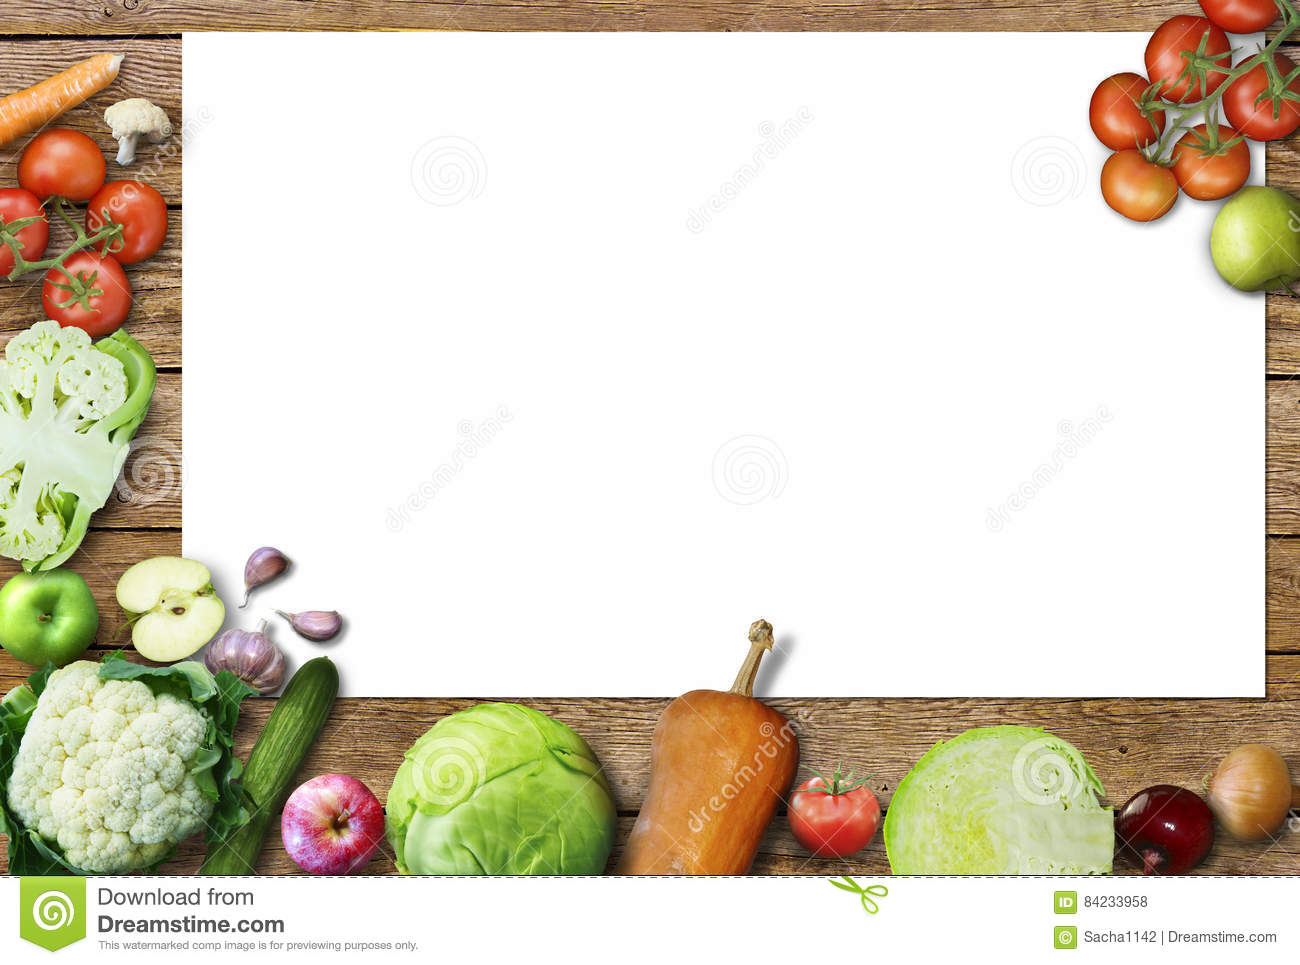 Healthy Food Background Studio Photo Of Different Fruits And Vegetables On Old Wooden Table